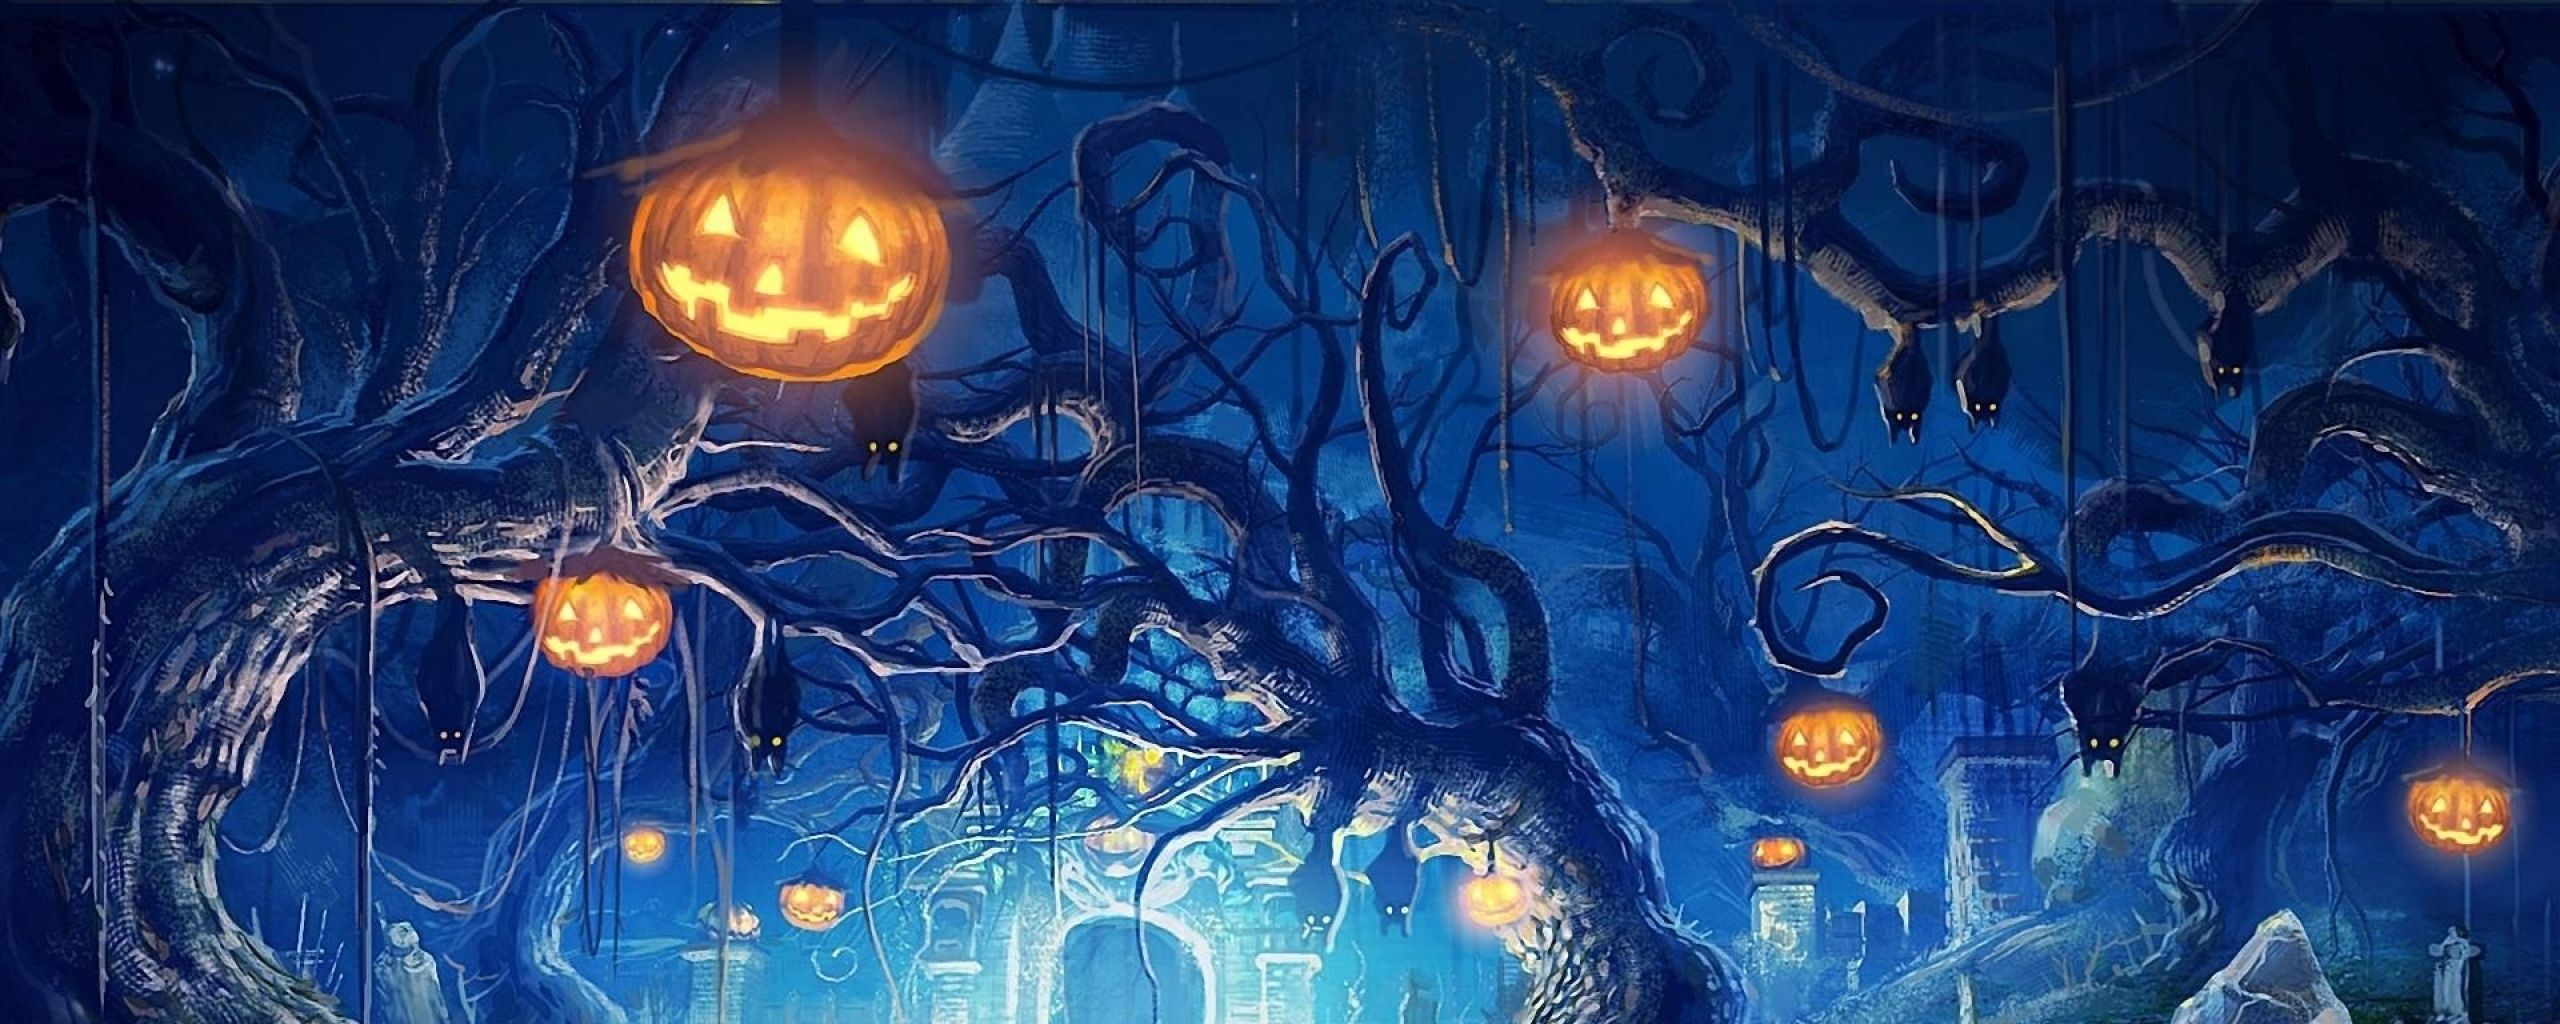 Download Wallpaper 2560x1024 Halloween Holiday Castle Gates Backdrops Backgrounds Studio Backdrops Backgrounds Halloween Wallpaper